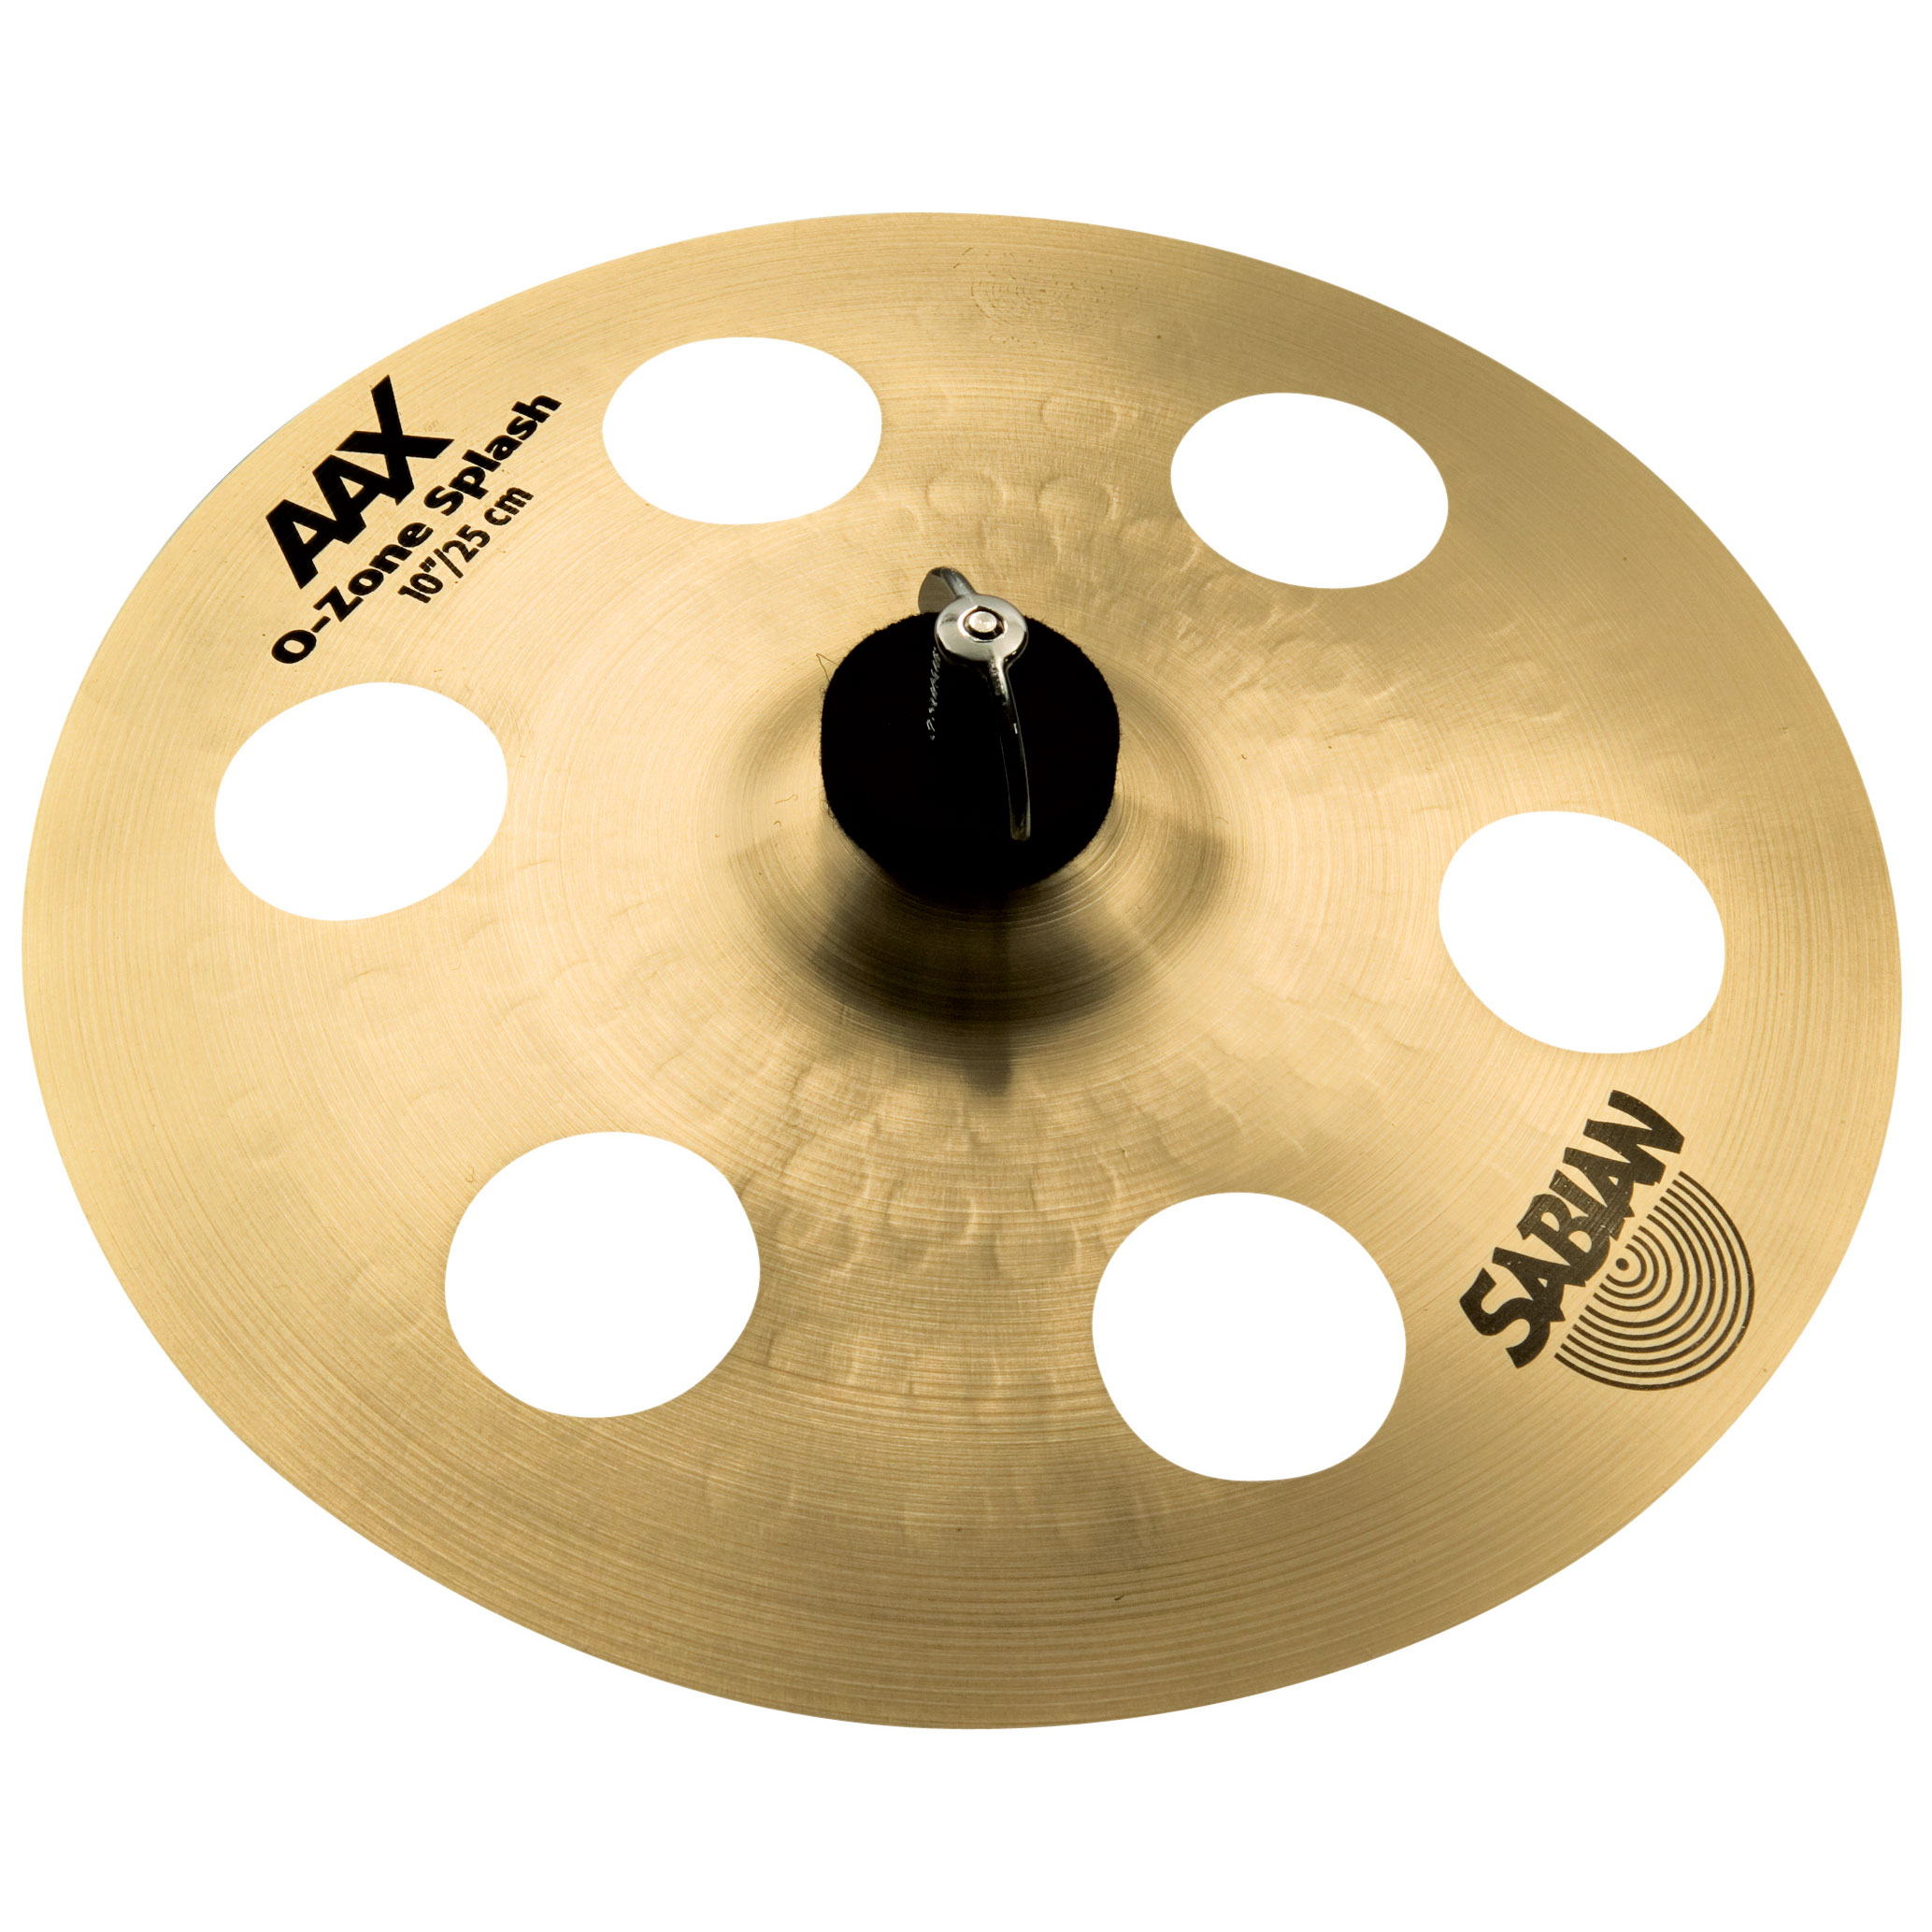 "Sabian 10"" AAX O-Zone Splash Cymbal in Natural Finish"